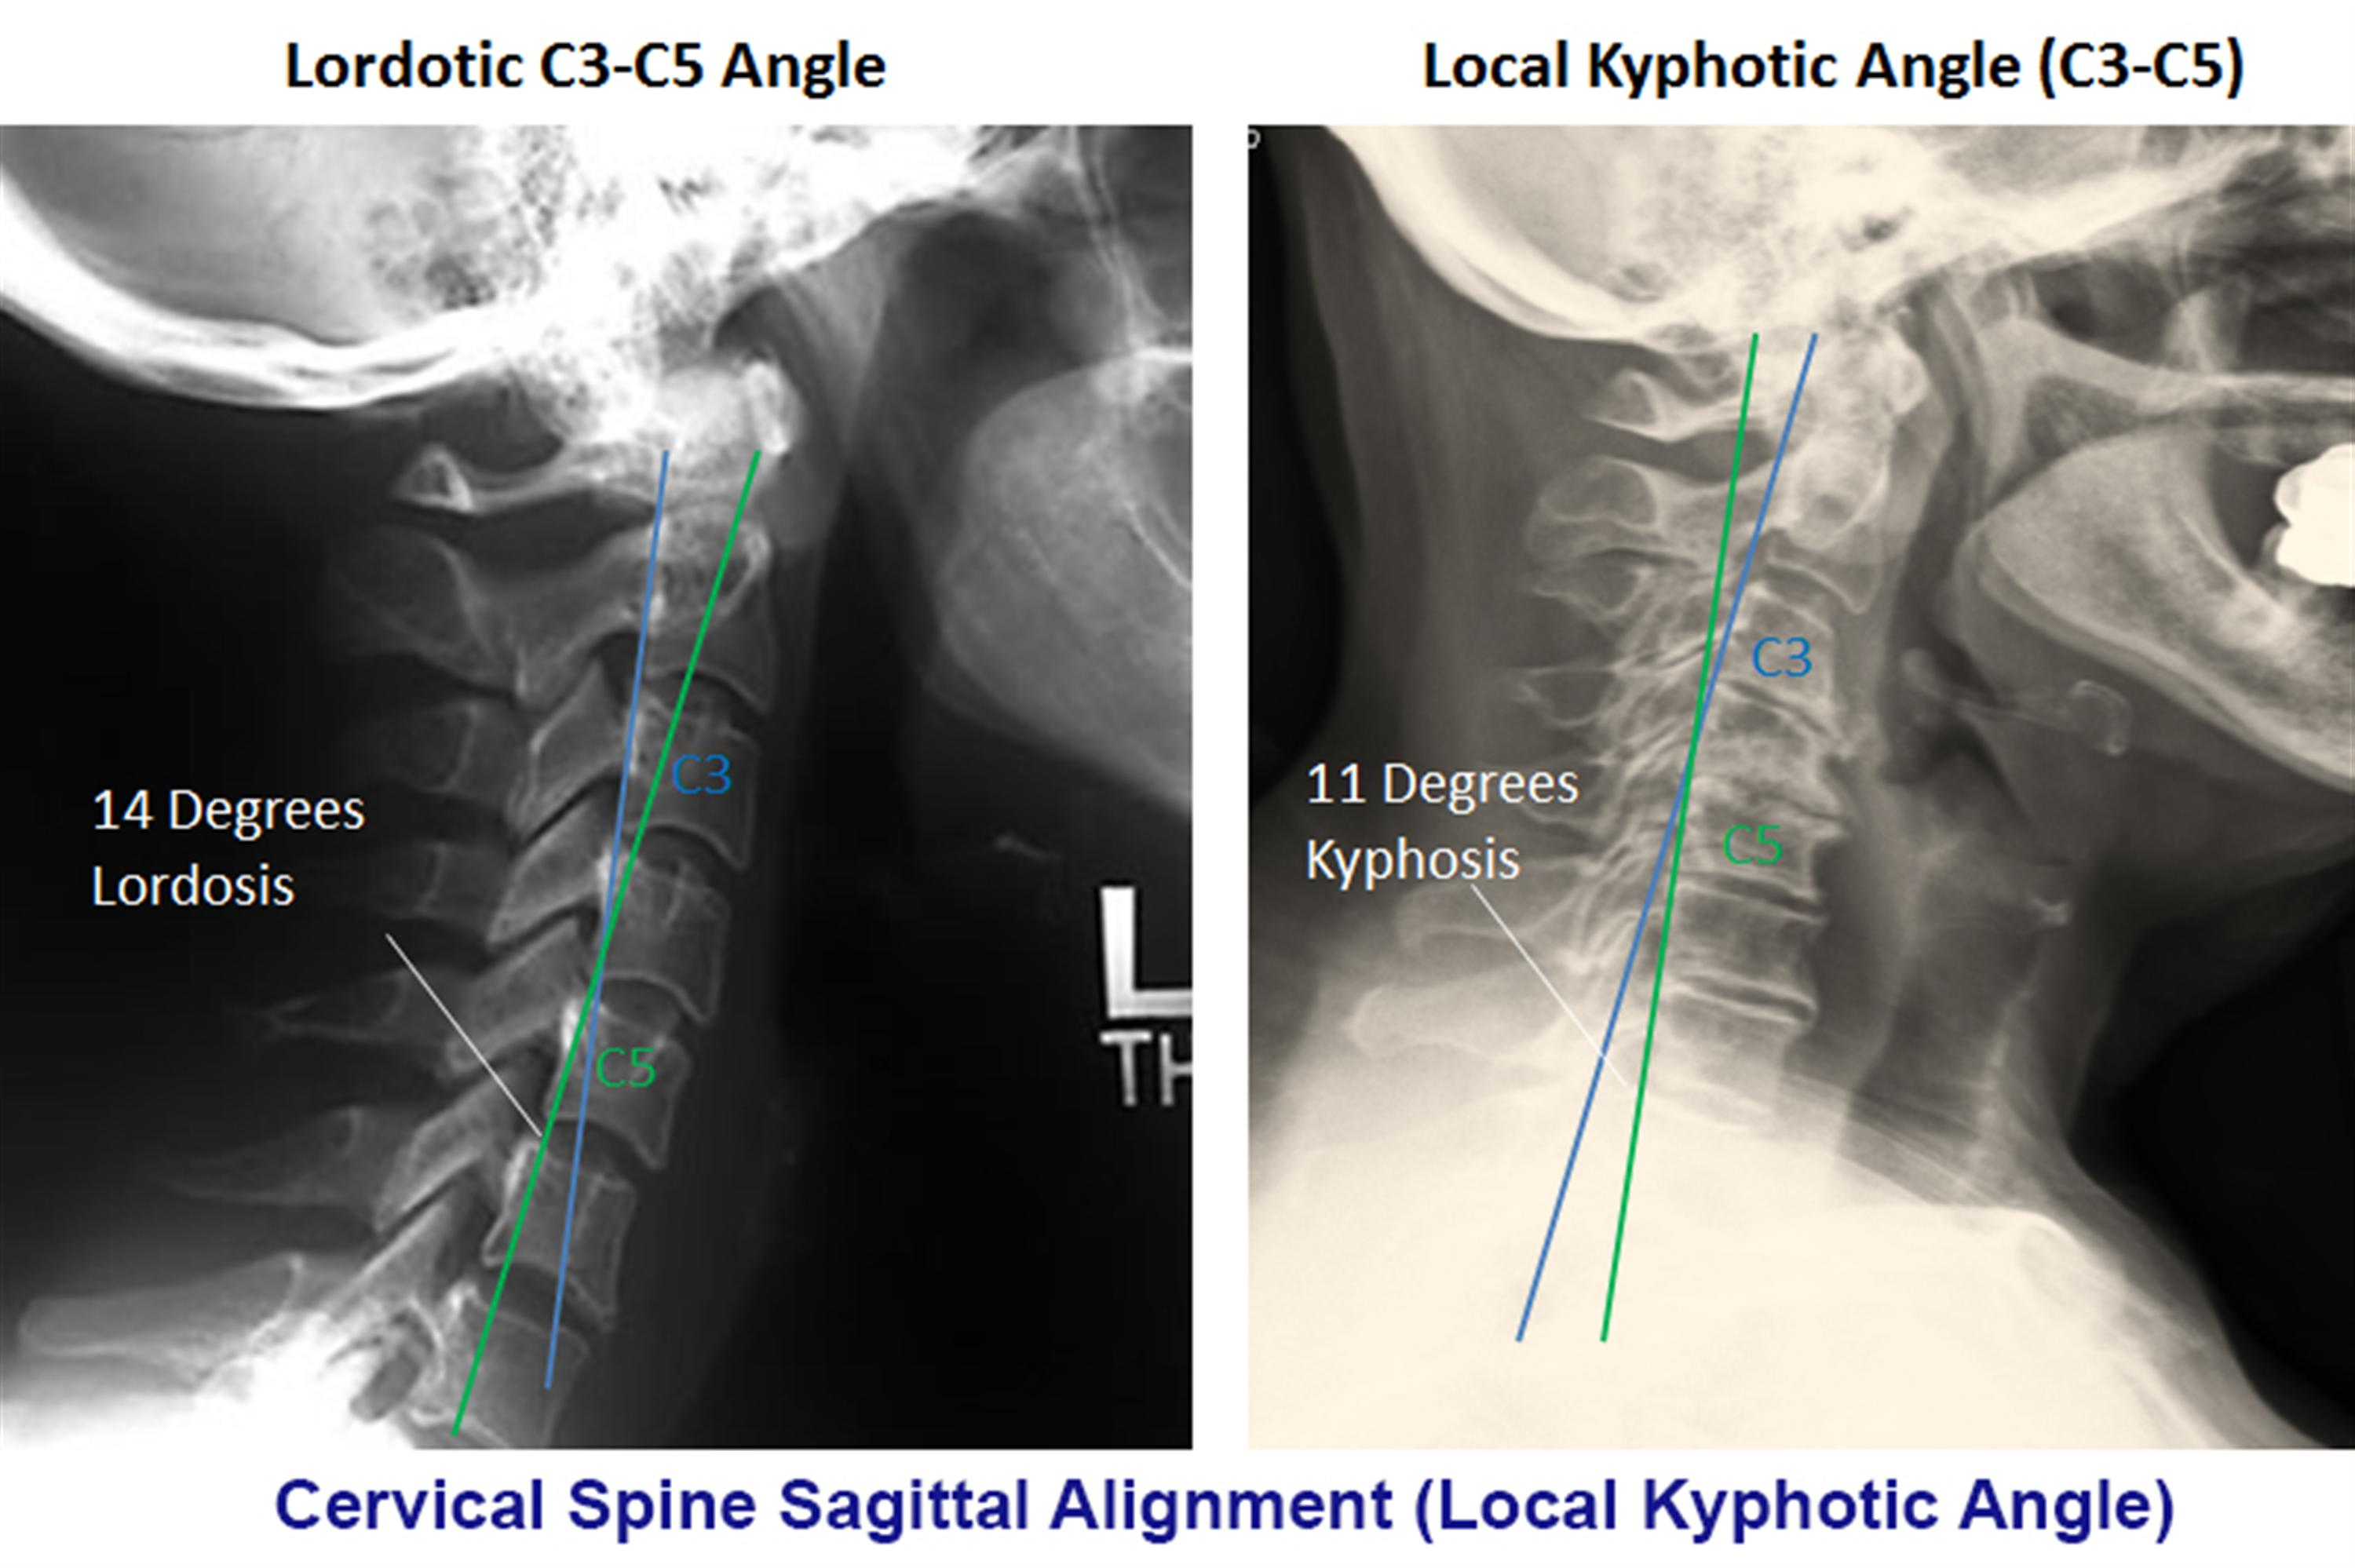 https://upload.orthobullets.com/topic/2031/images/local kyphotic angle.jpg